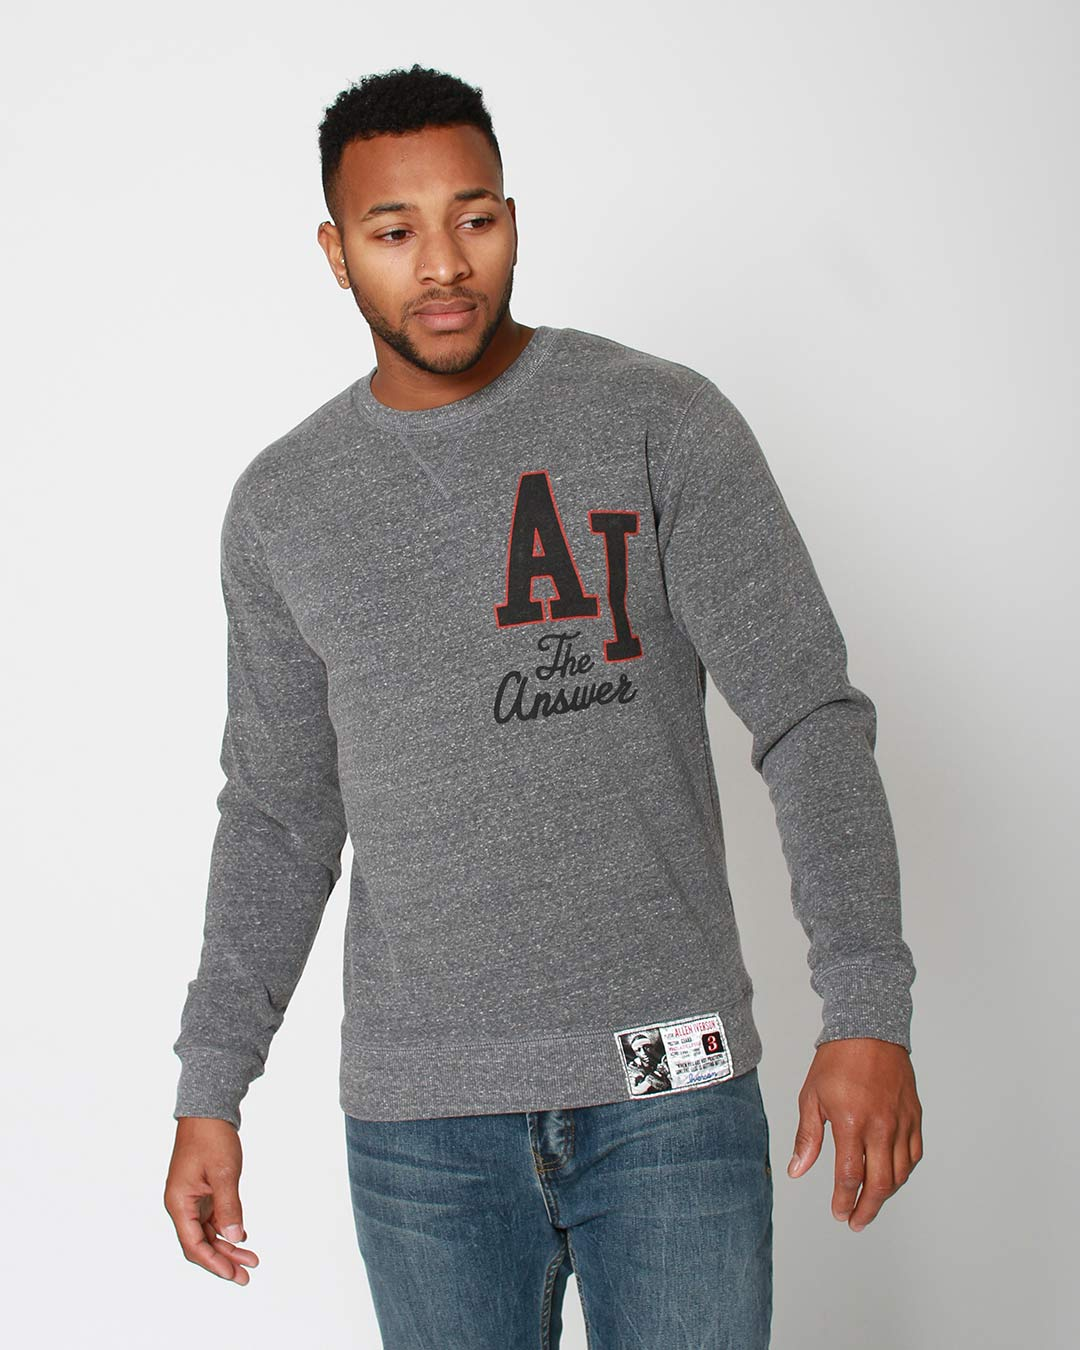 Allen Iverson 'The Answer' Sweatshirt